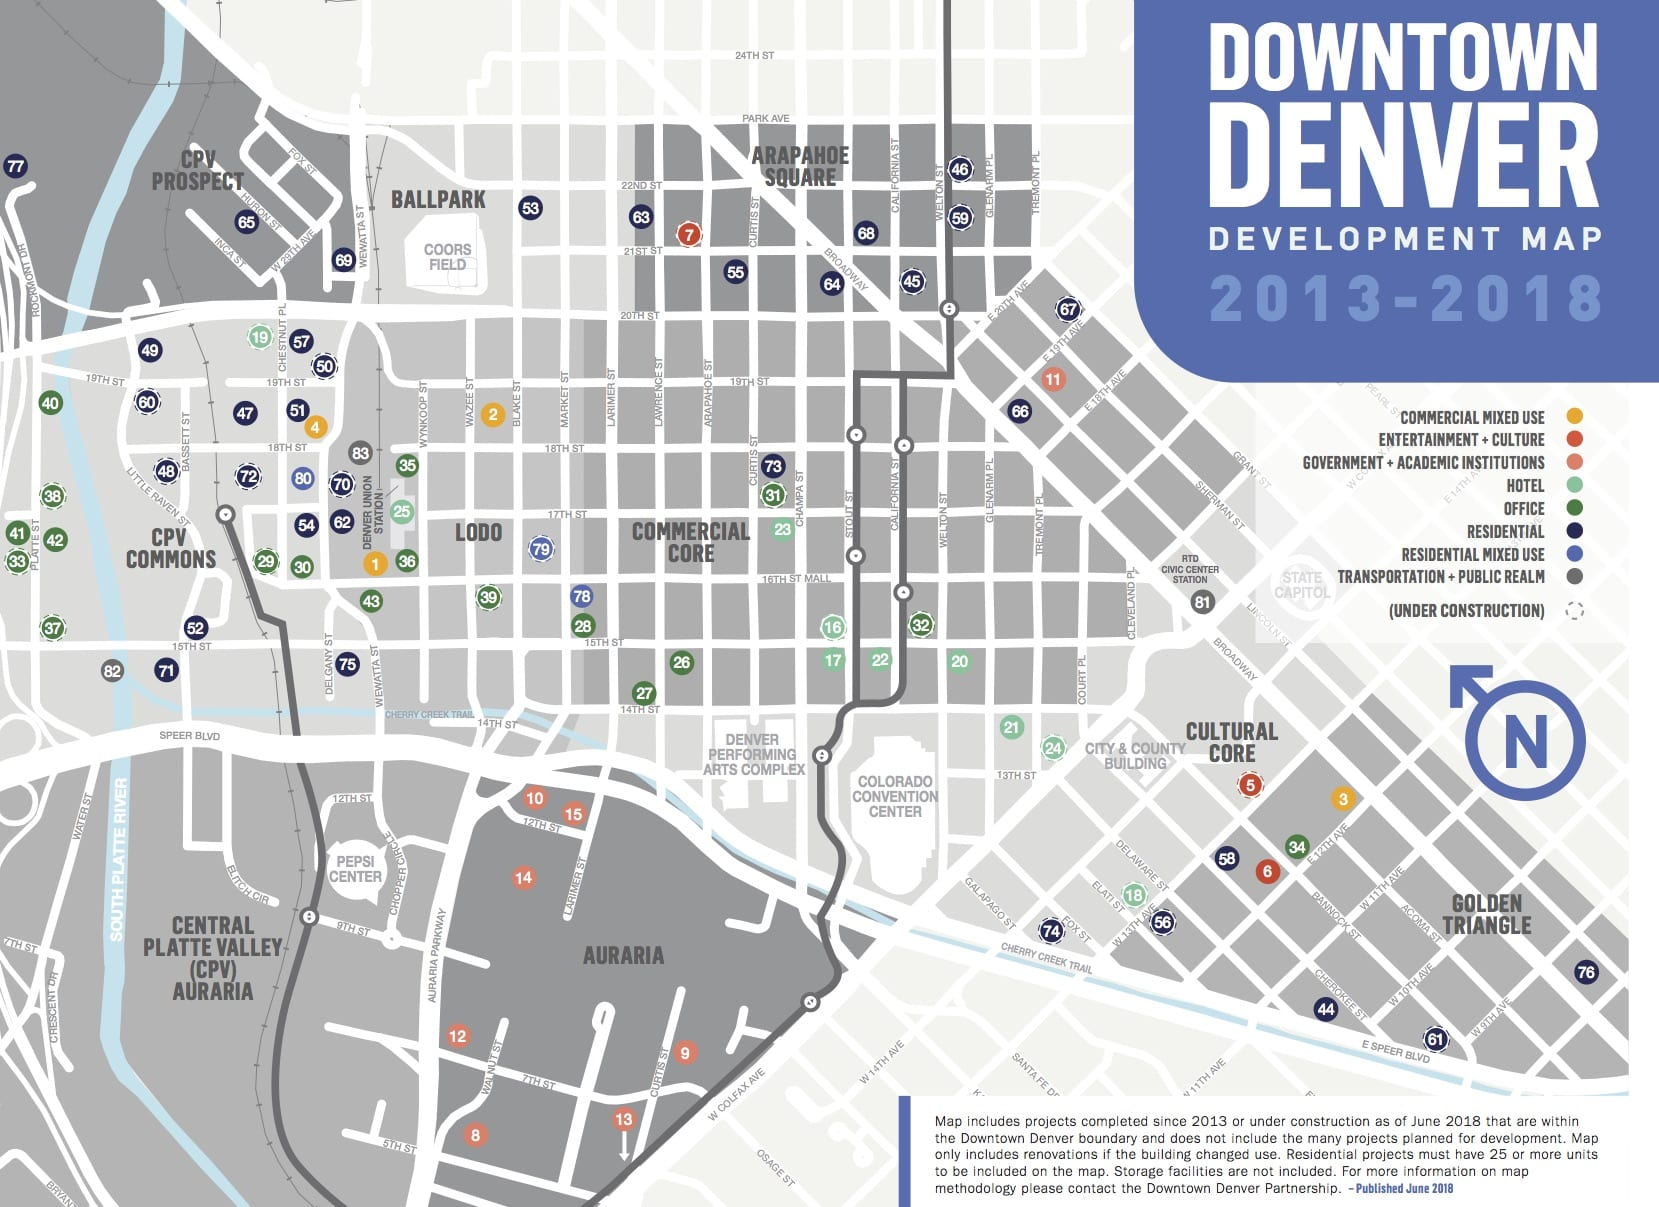 Denver sees more than $5 billion in 83 development projects ... on